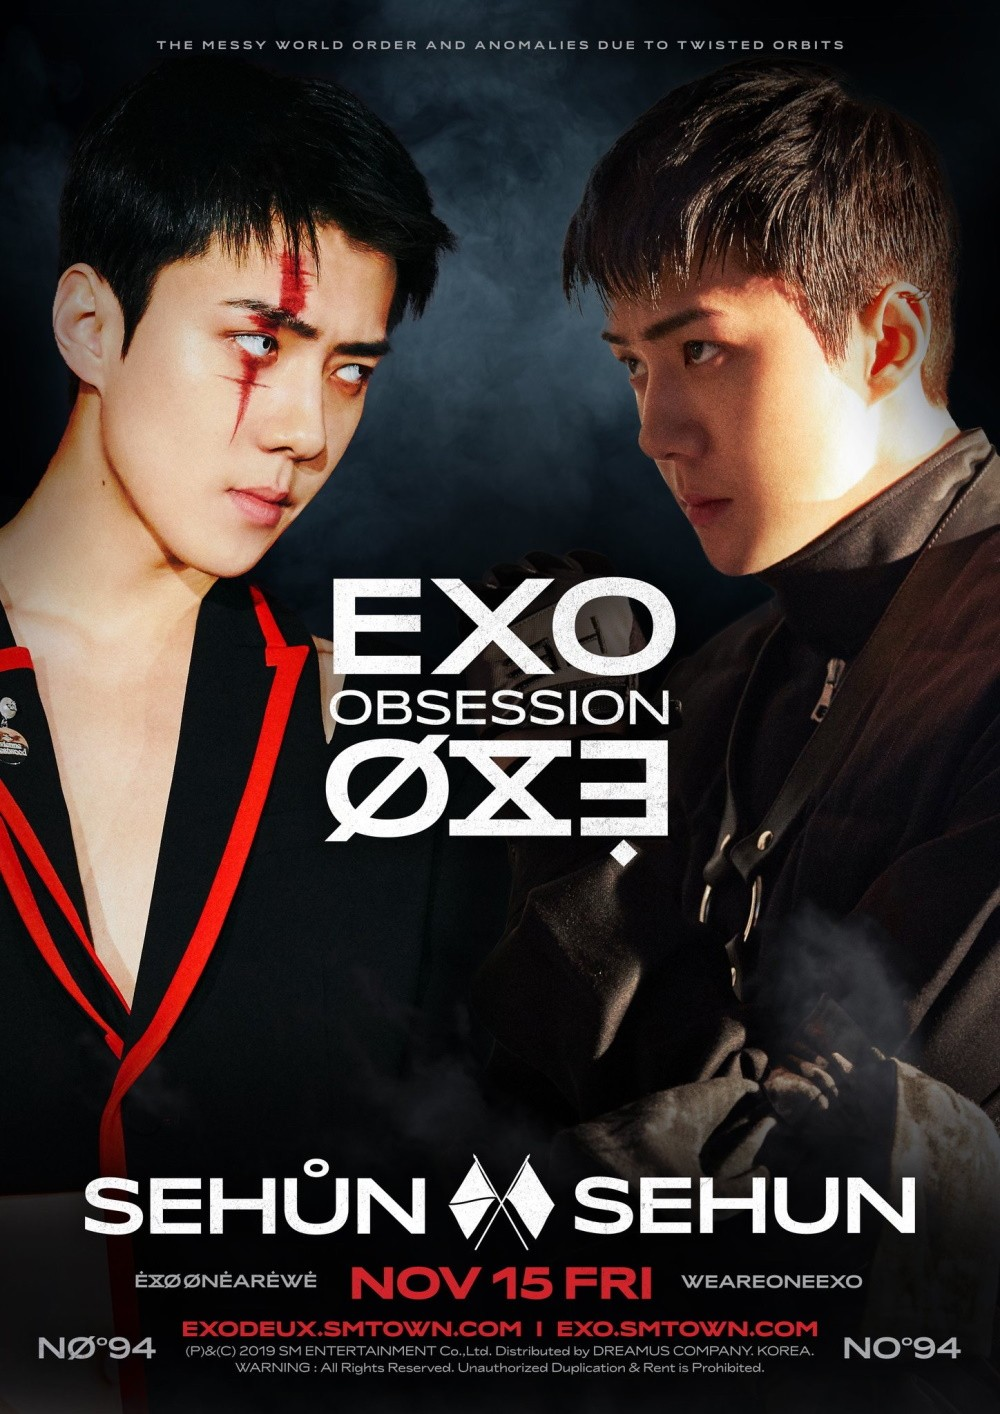 Exo S Sehun Comes Face To Face With Doppelganger In